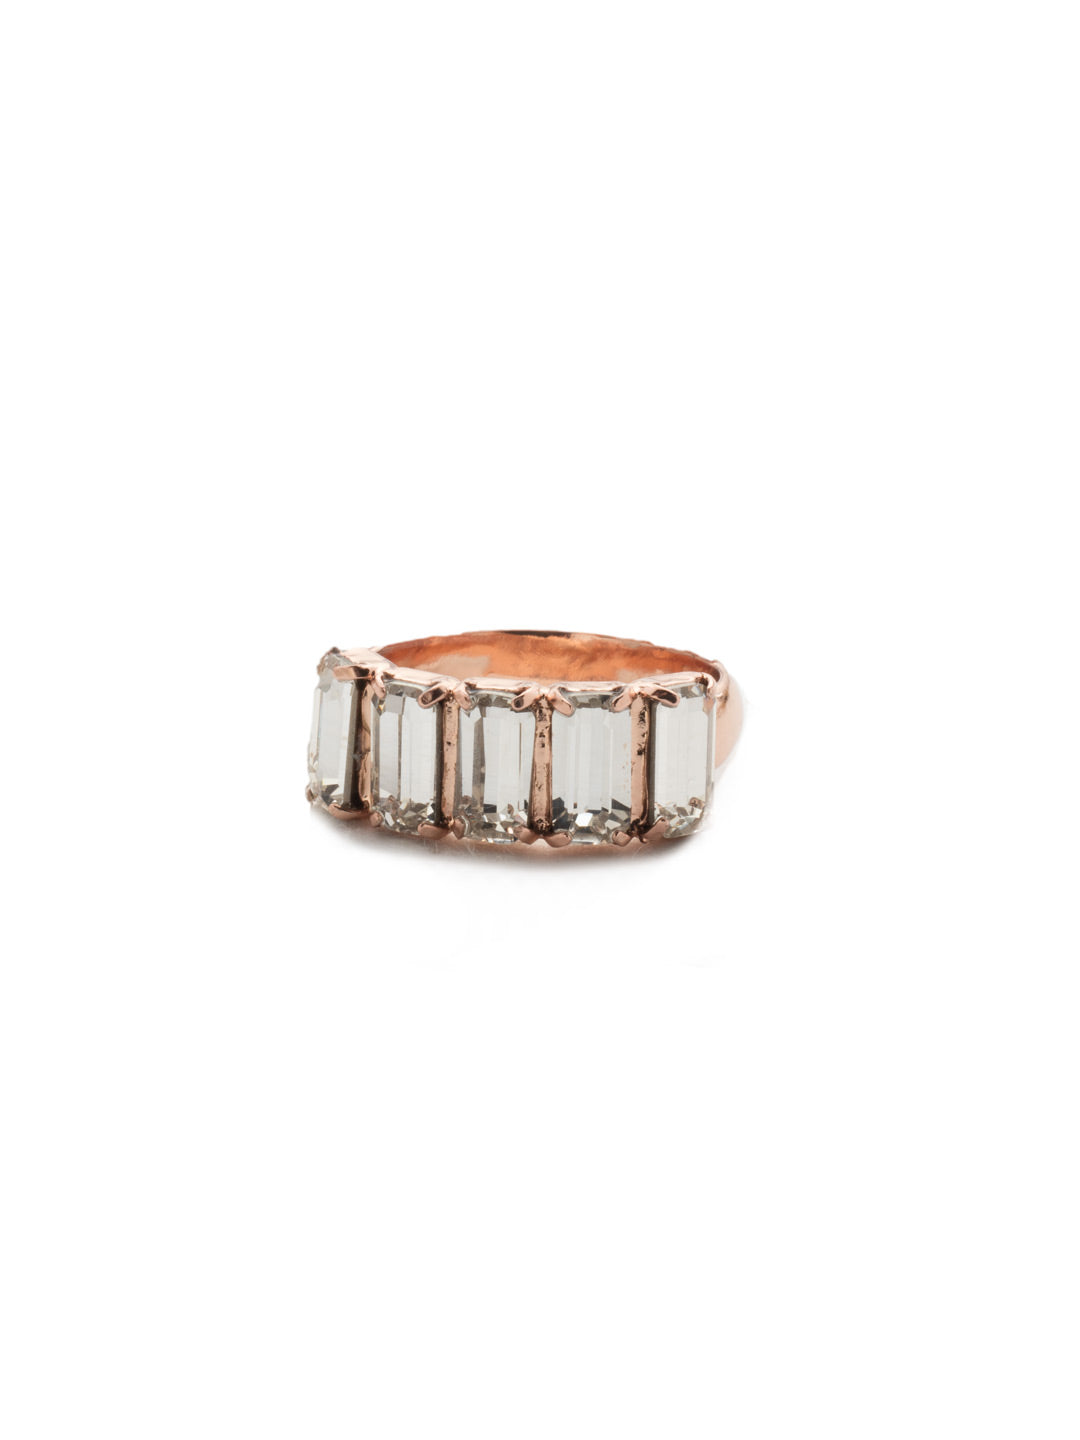 Arden Band Ring - REF29RGROG